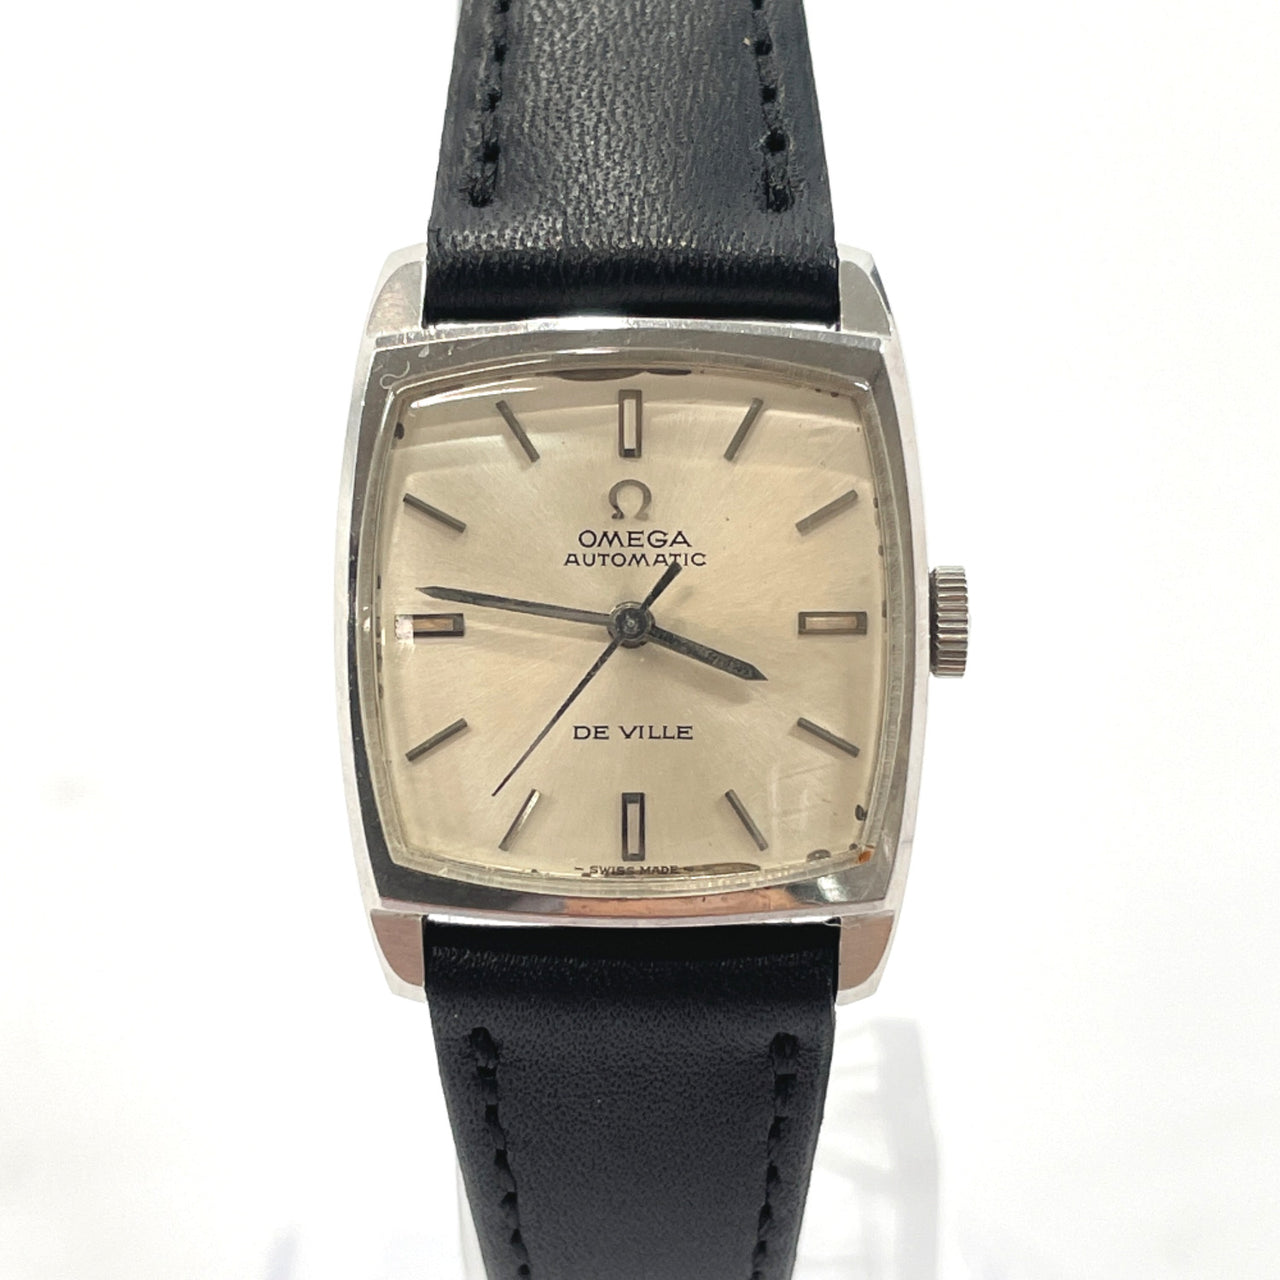 OMEGA Watches 671 Omega Mechanical Automatic vintage Stainless Steel Silver Women Used